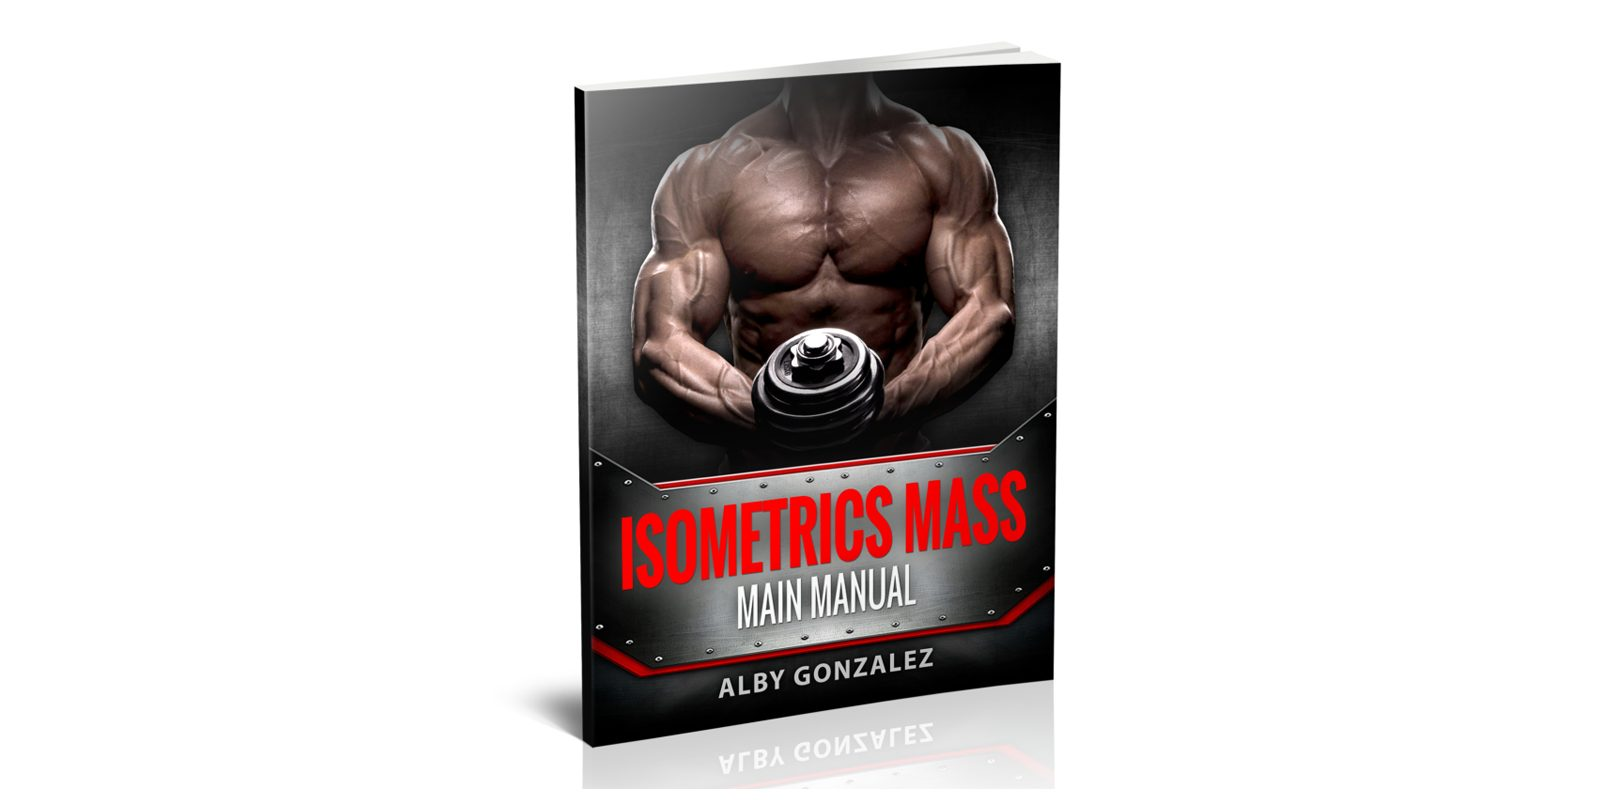 Isometrics Mass Review